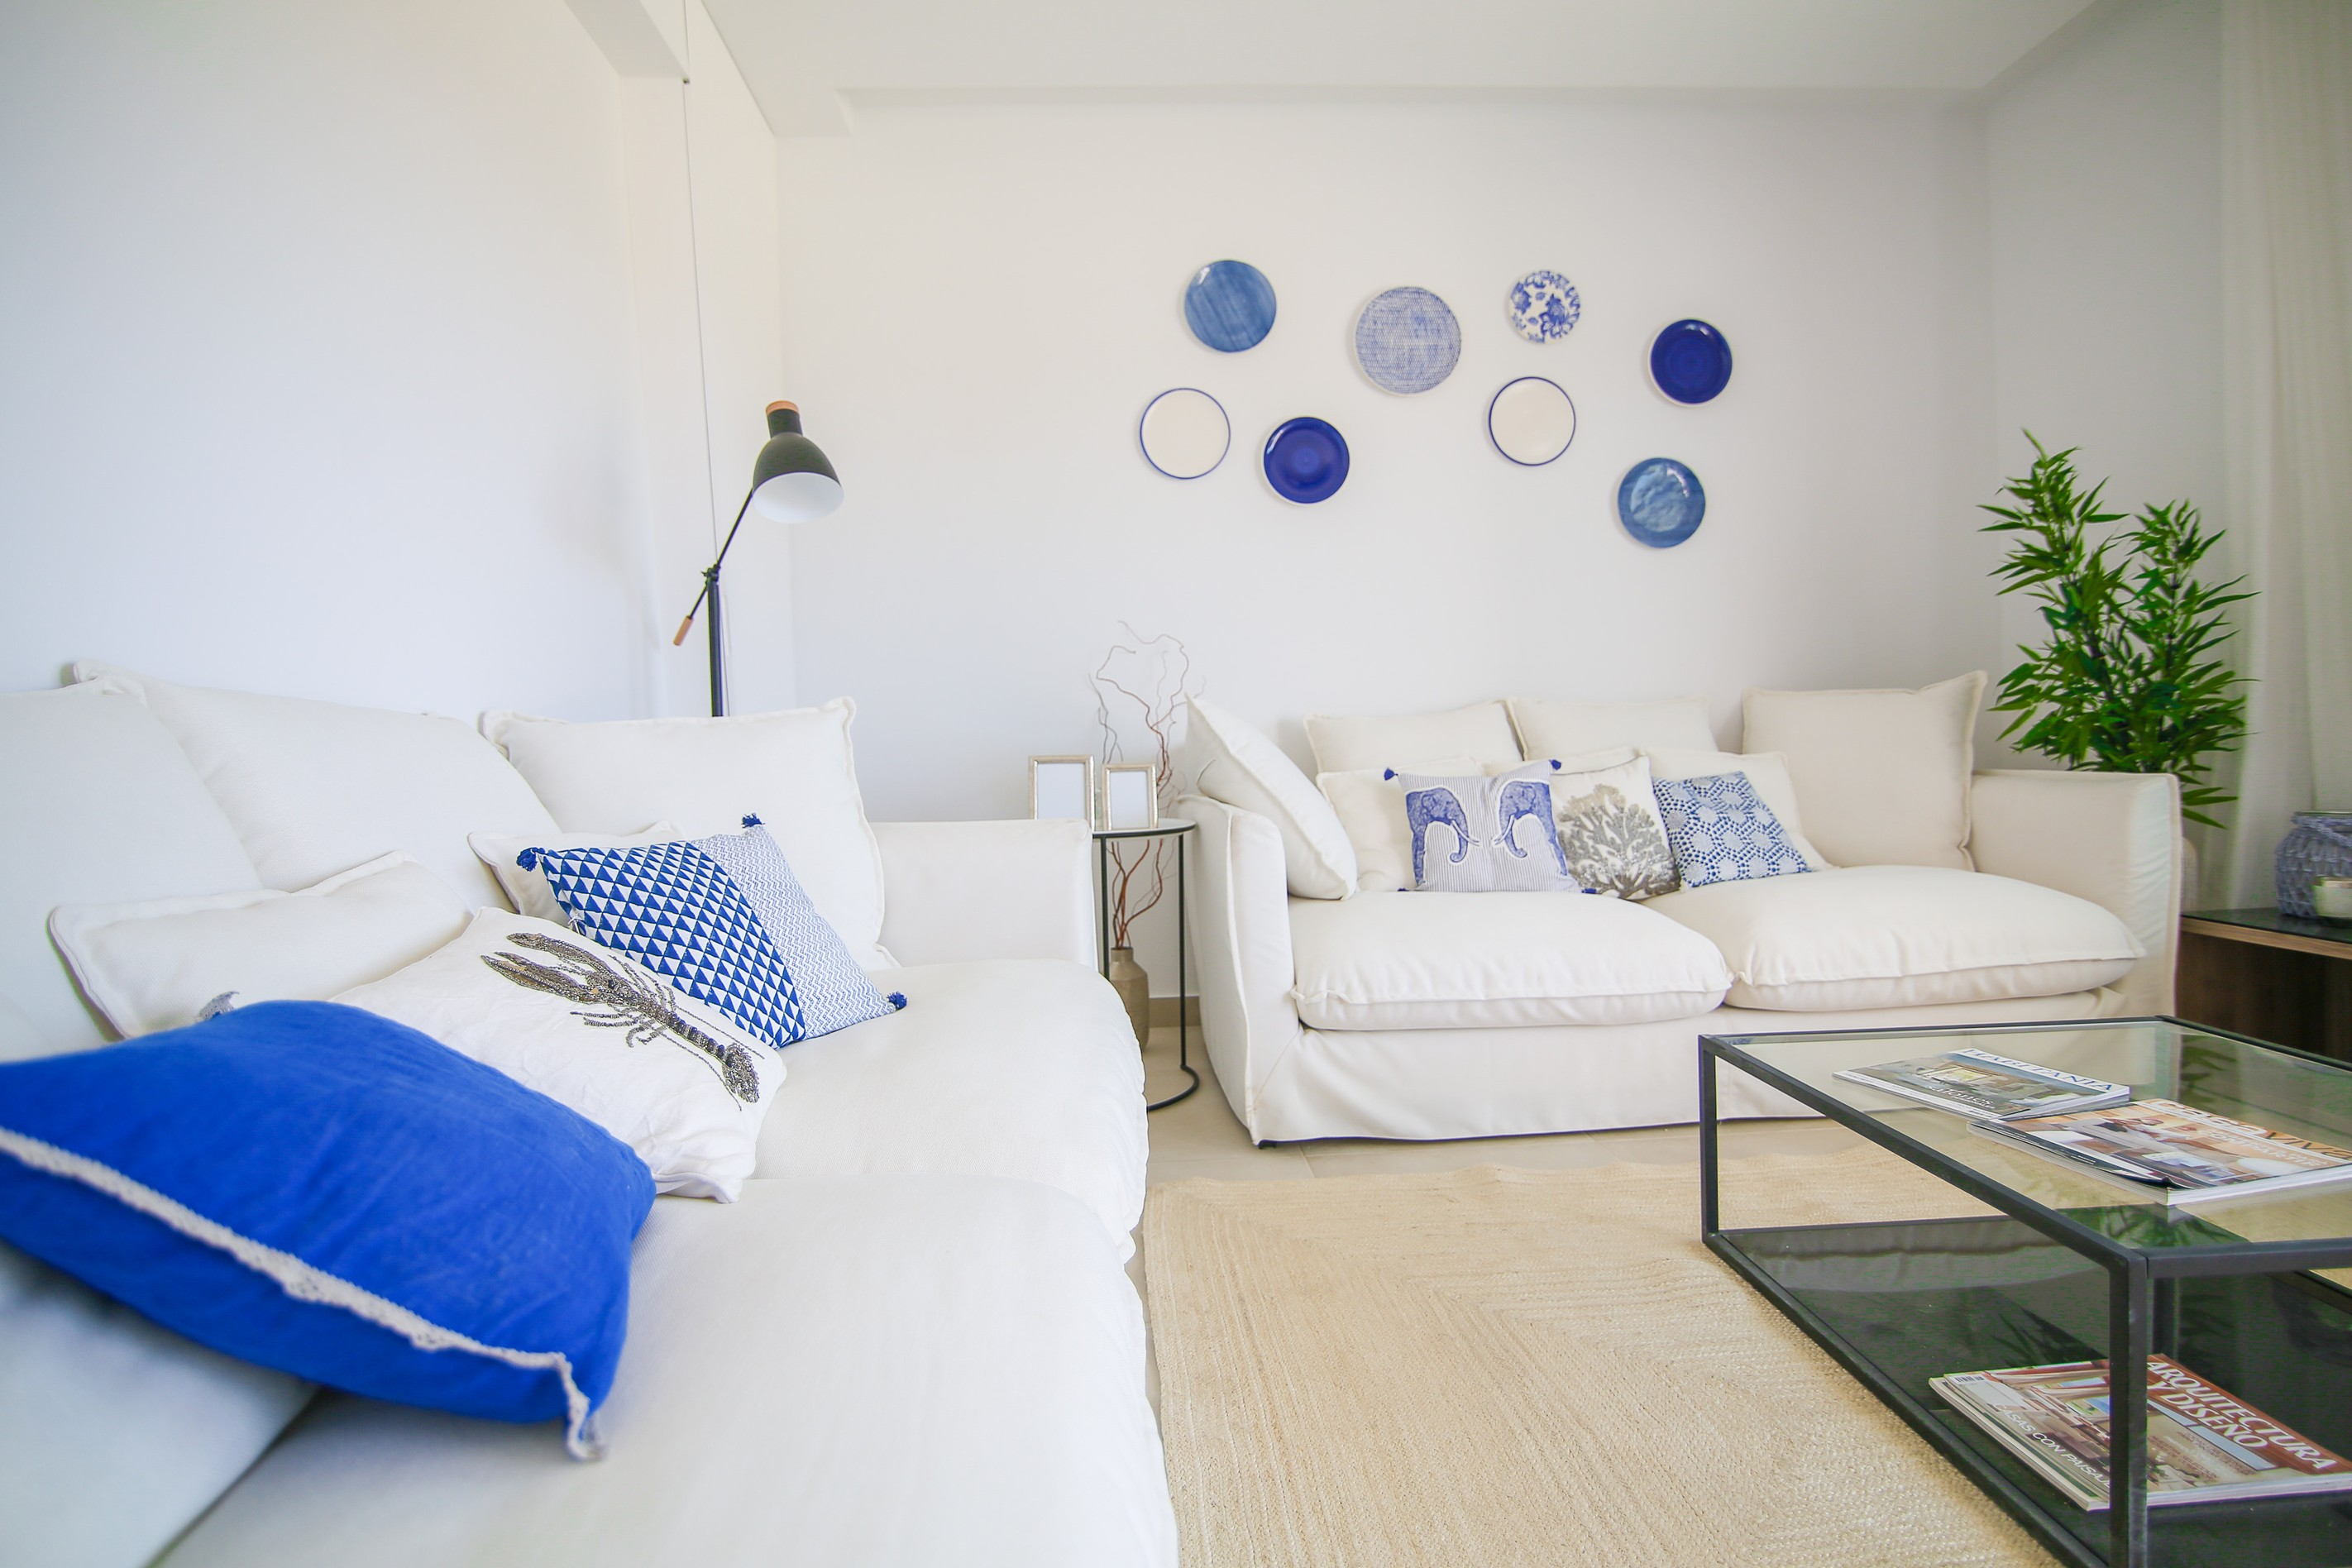 2 bedroom apartment For Sale in Finestrat - photograph 32